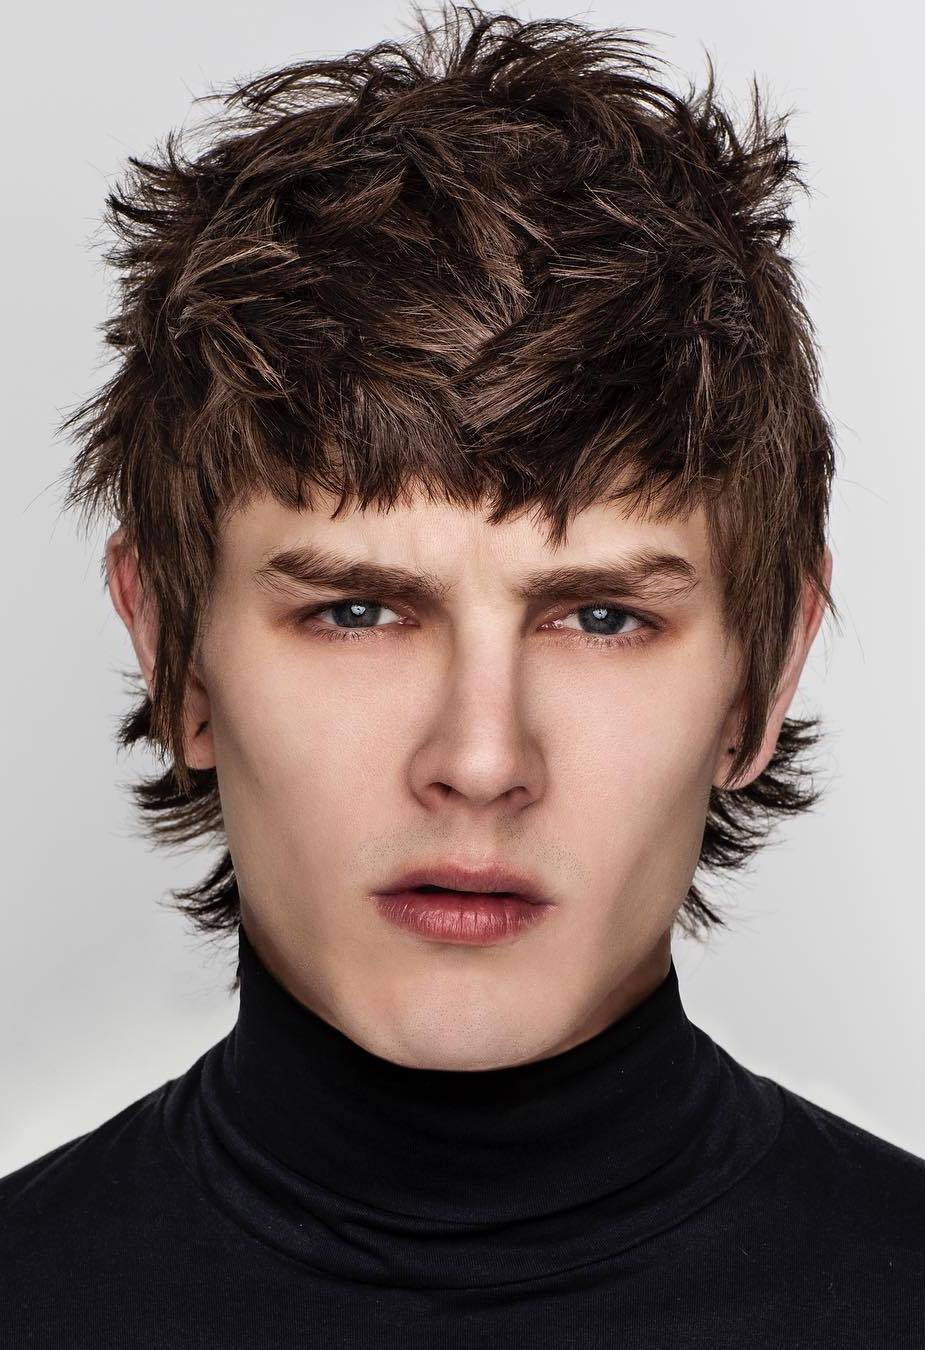 15 The Trendiest Men S Fringe Haircuts Of 2021